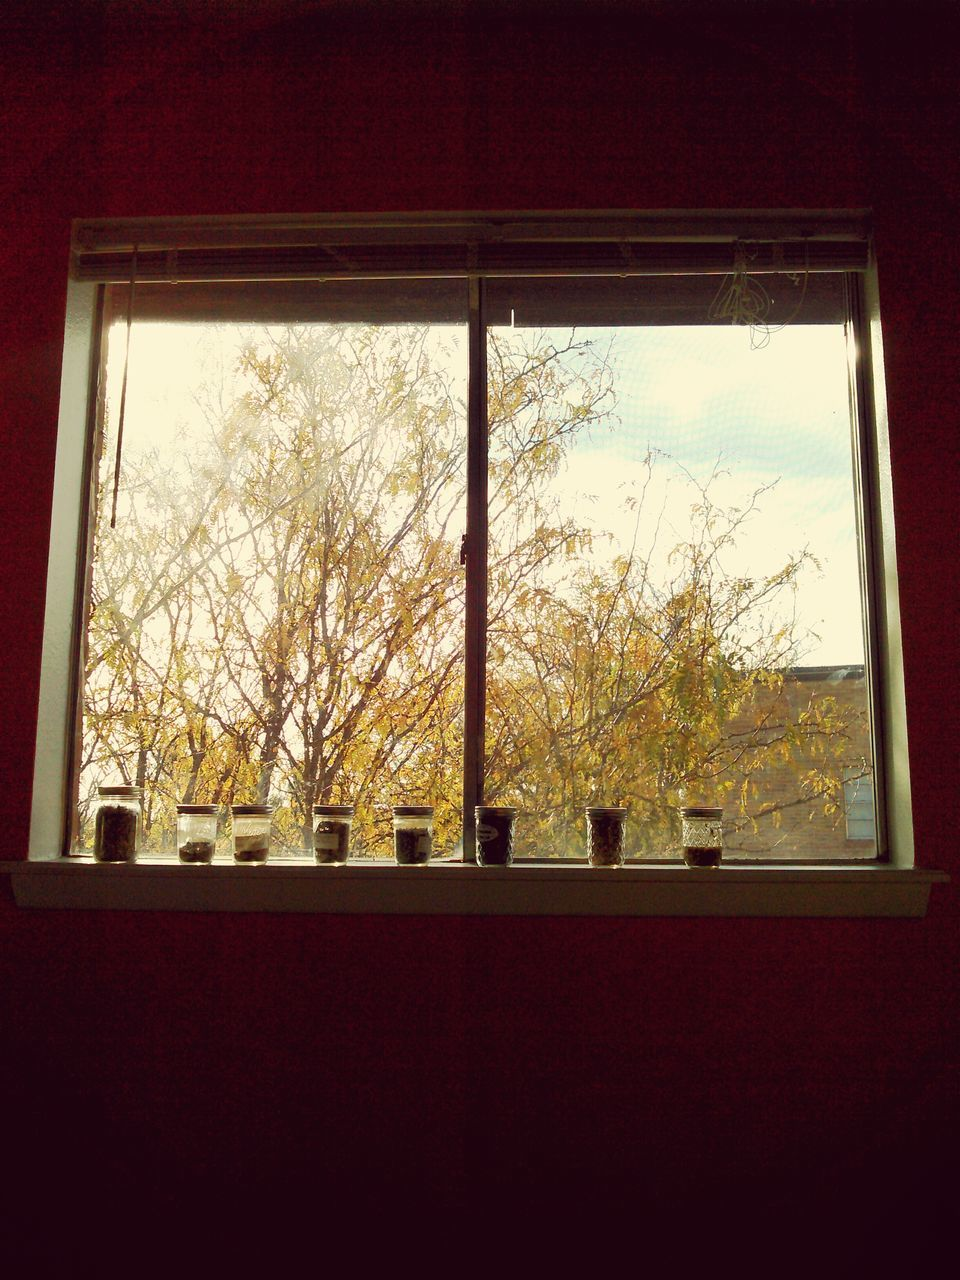 window, tree, indoors, no people, day, nature, architecture